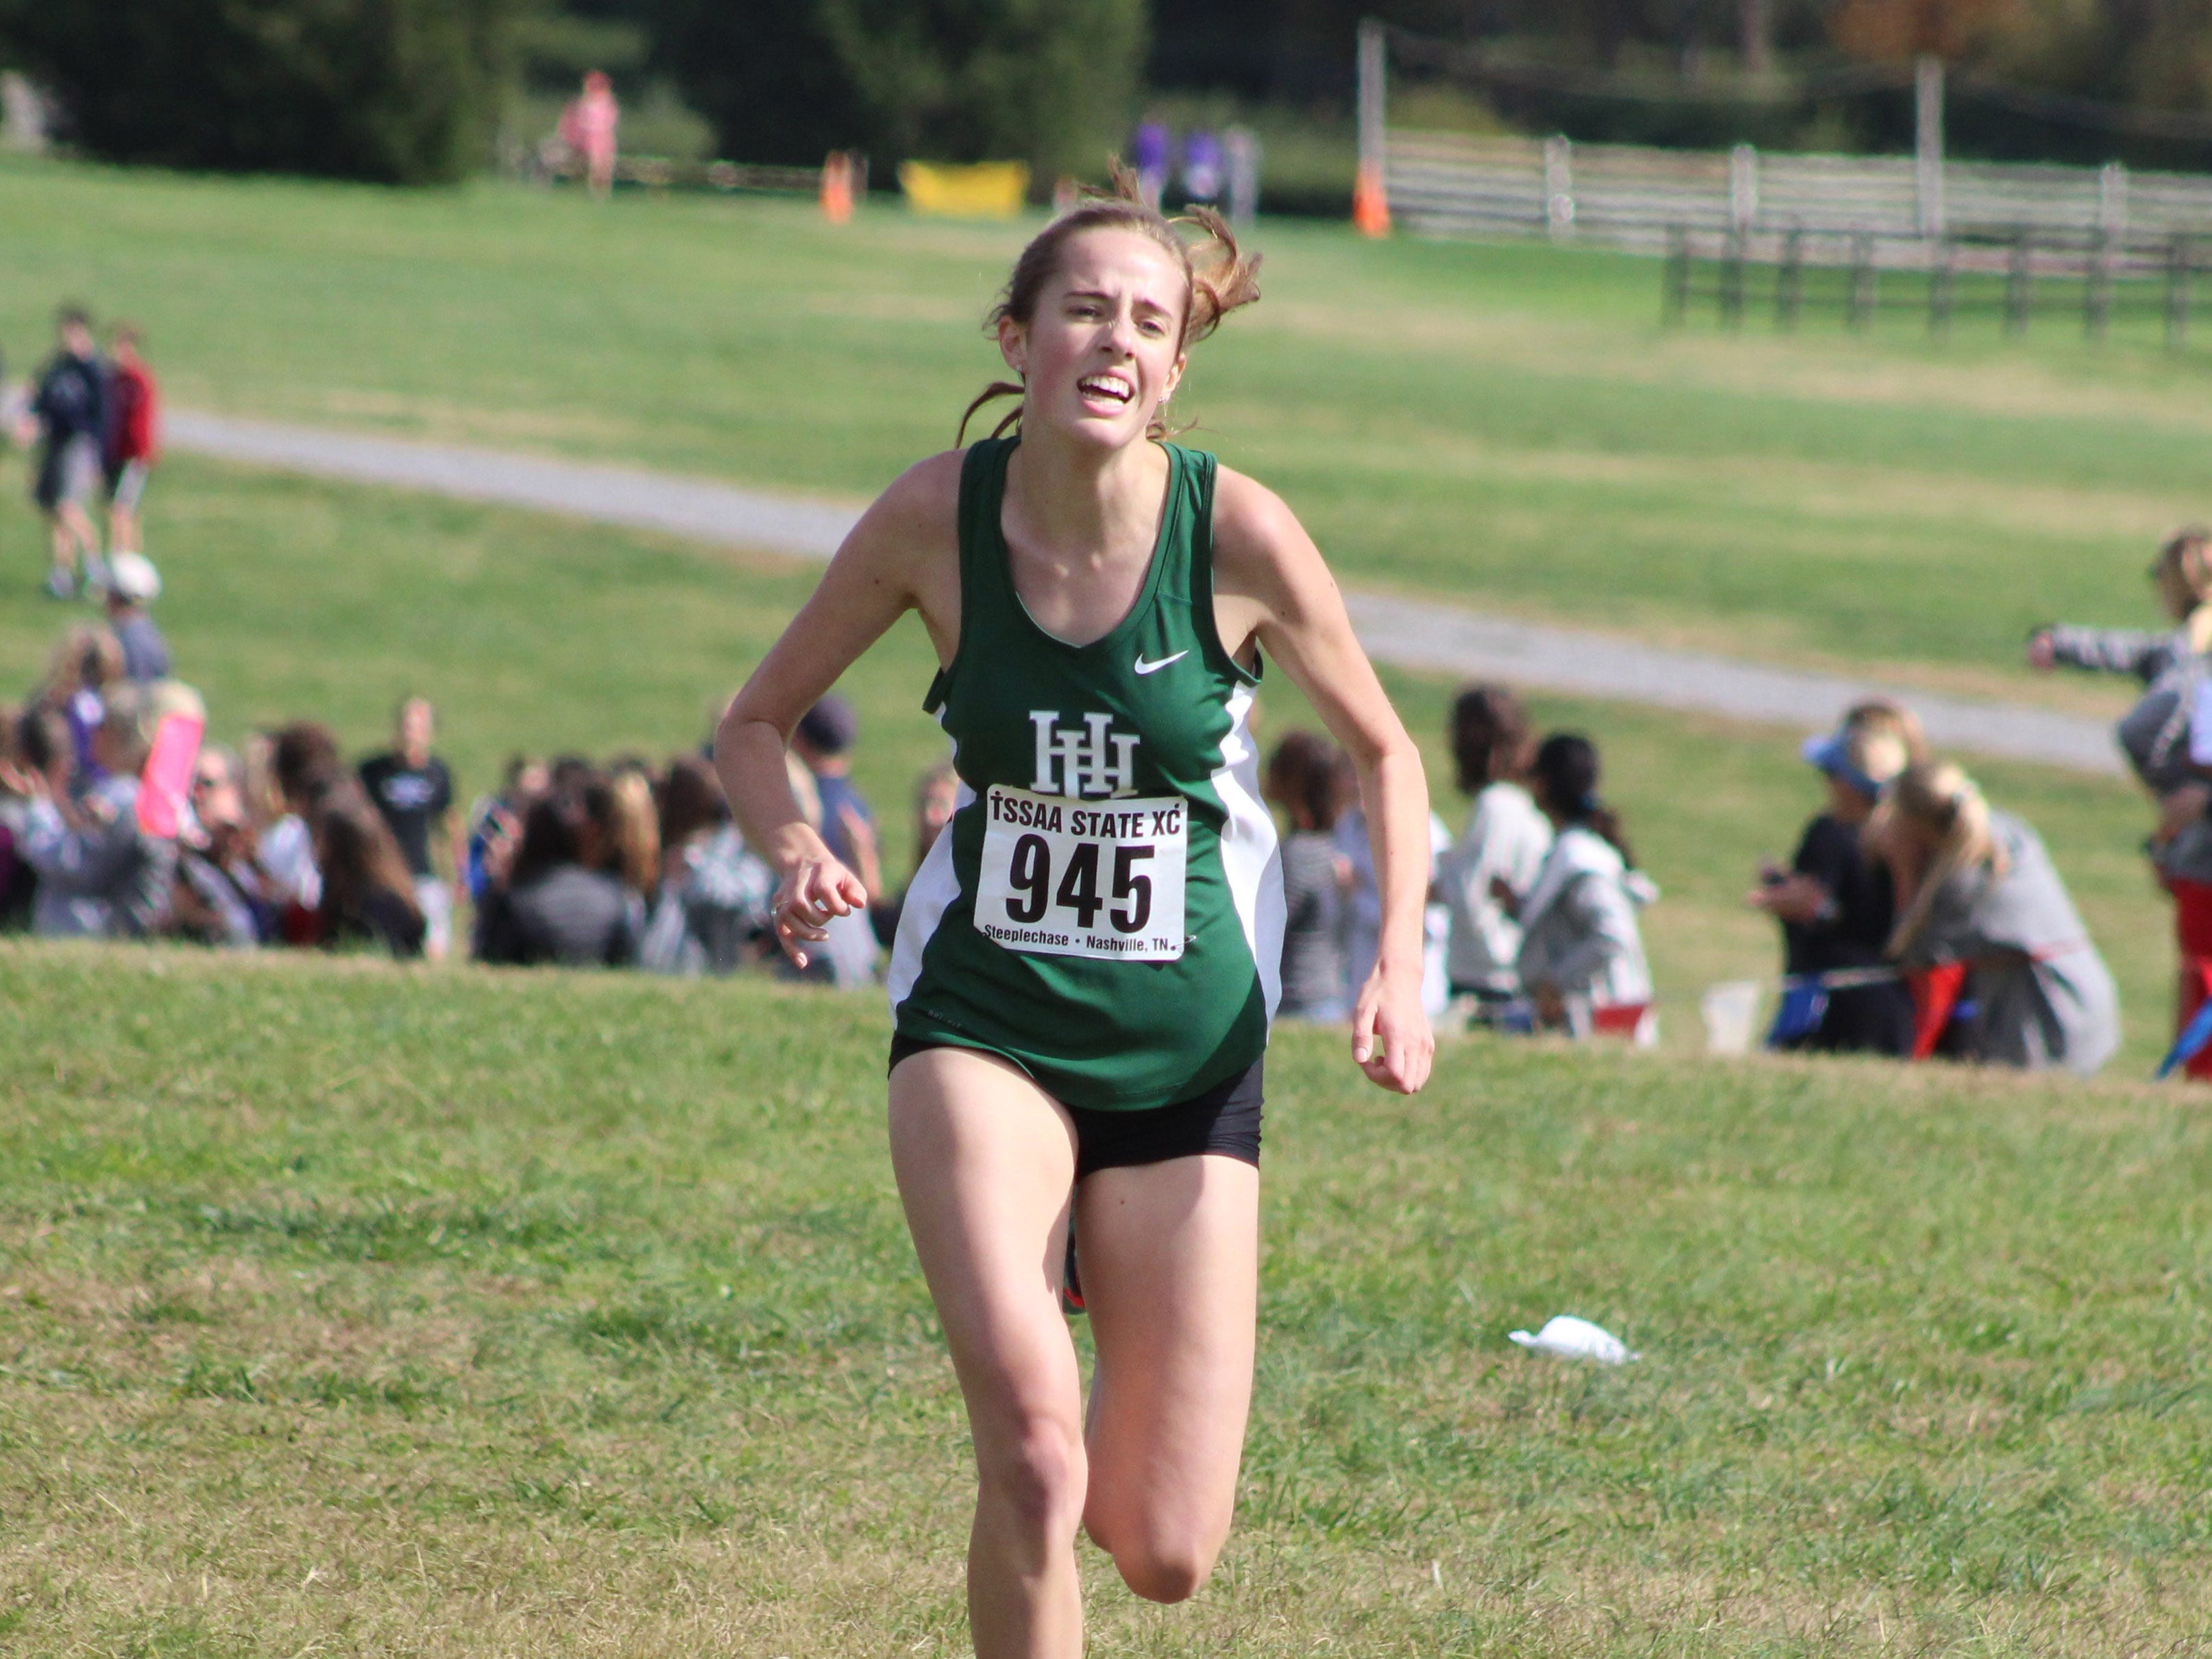 Harpeth Hall's Alexa Anderson finished sixthin 20:31.47 in the TSSAA Division II-AA girls cross country state championship on Saturday at Percy Warner Park.